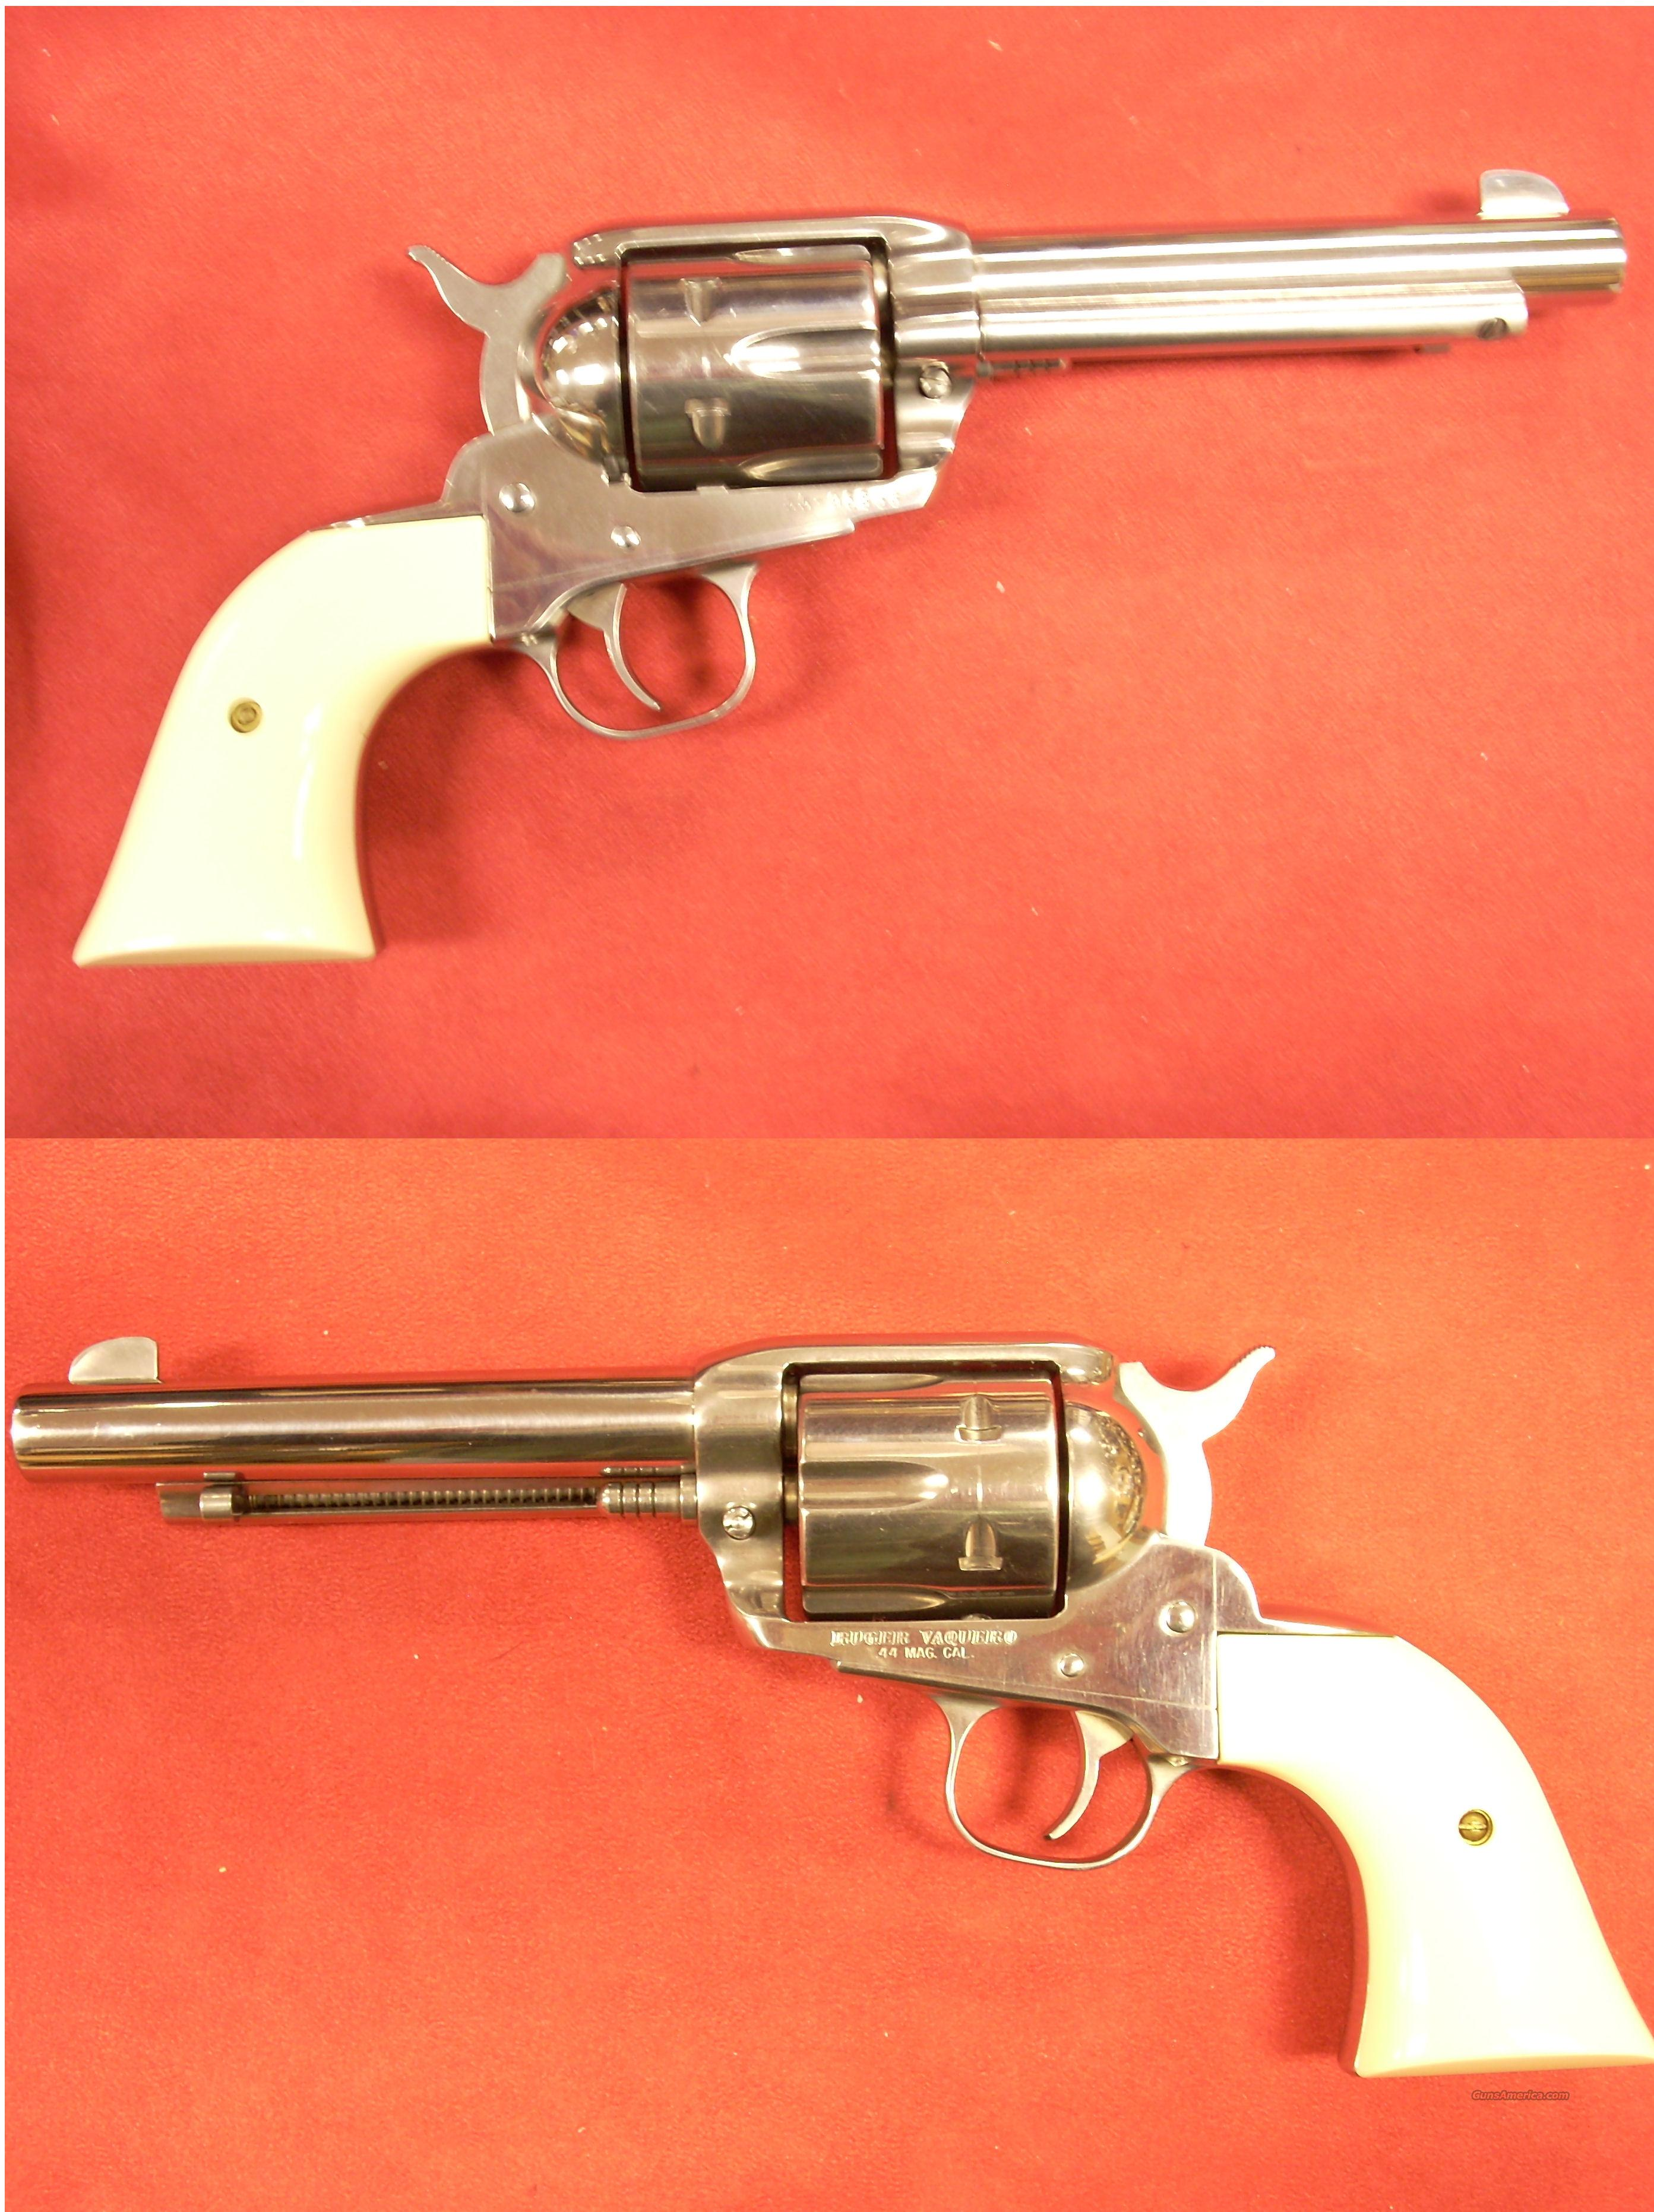 Ruger Vaquero .44 Magnum  *MUST CALL*  Guns > Pistols > Ruger Single Action Revolvers > Cowboy Action